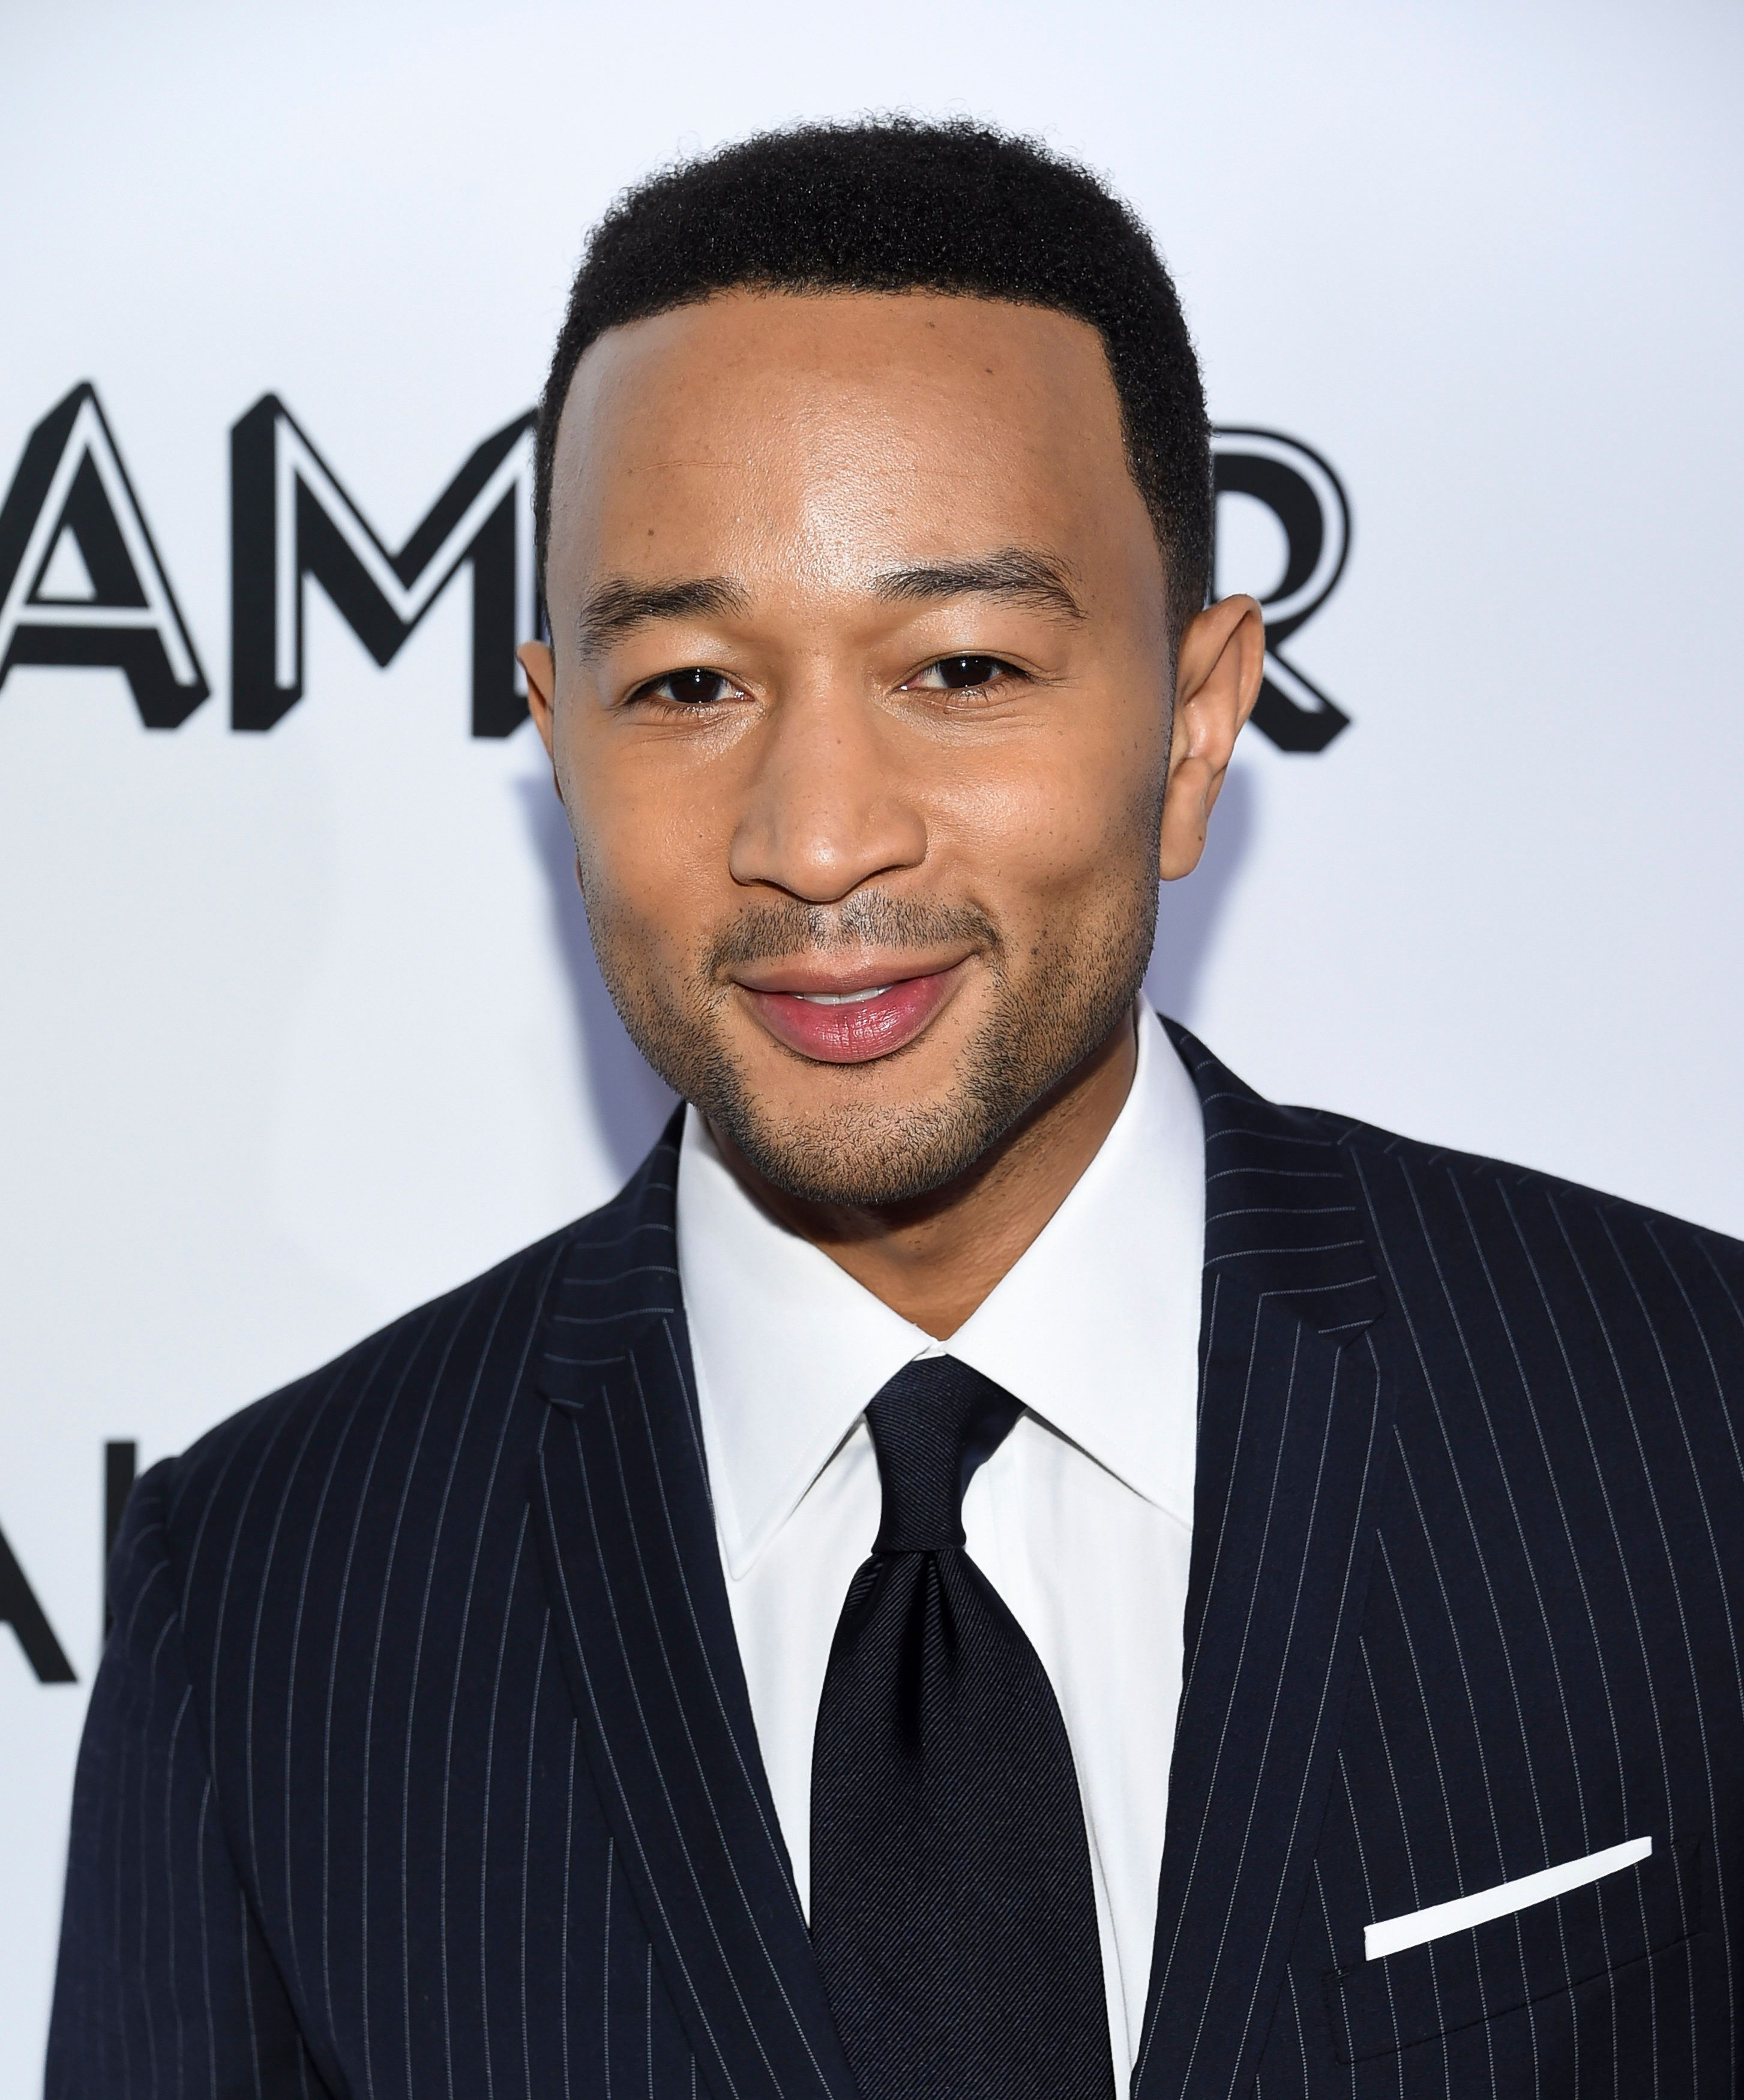 Musician John Legend attends the Glamour Women of the Year Awards at Spring Studios on Monday, Nov. 12, 2018, in New York. (Photo by Evan Agostini/Invision/AP)